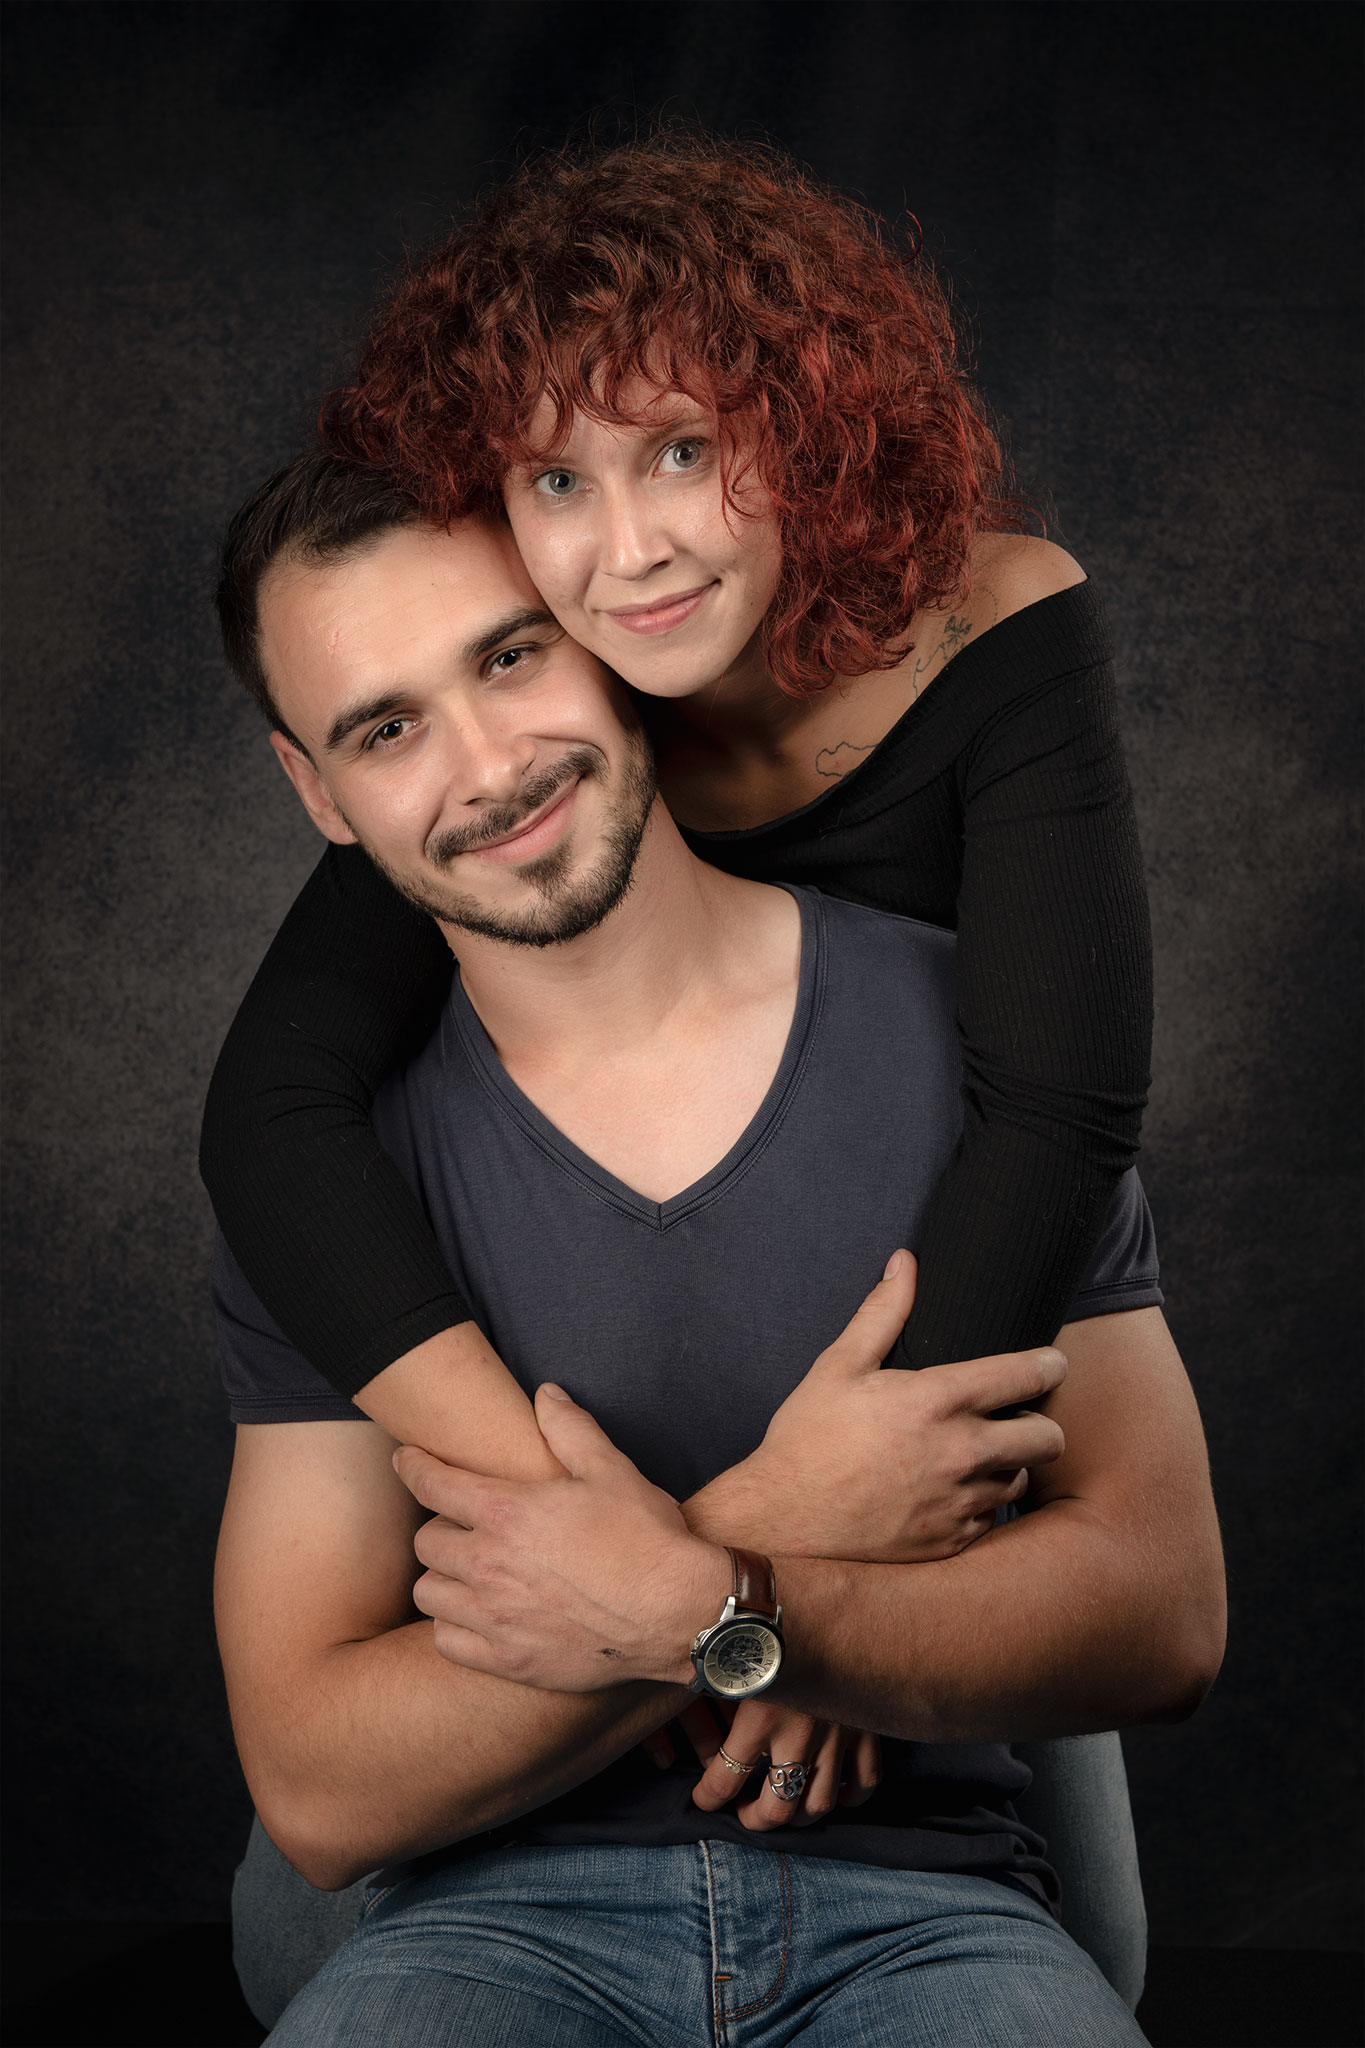 Couple en studio